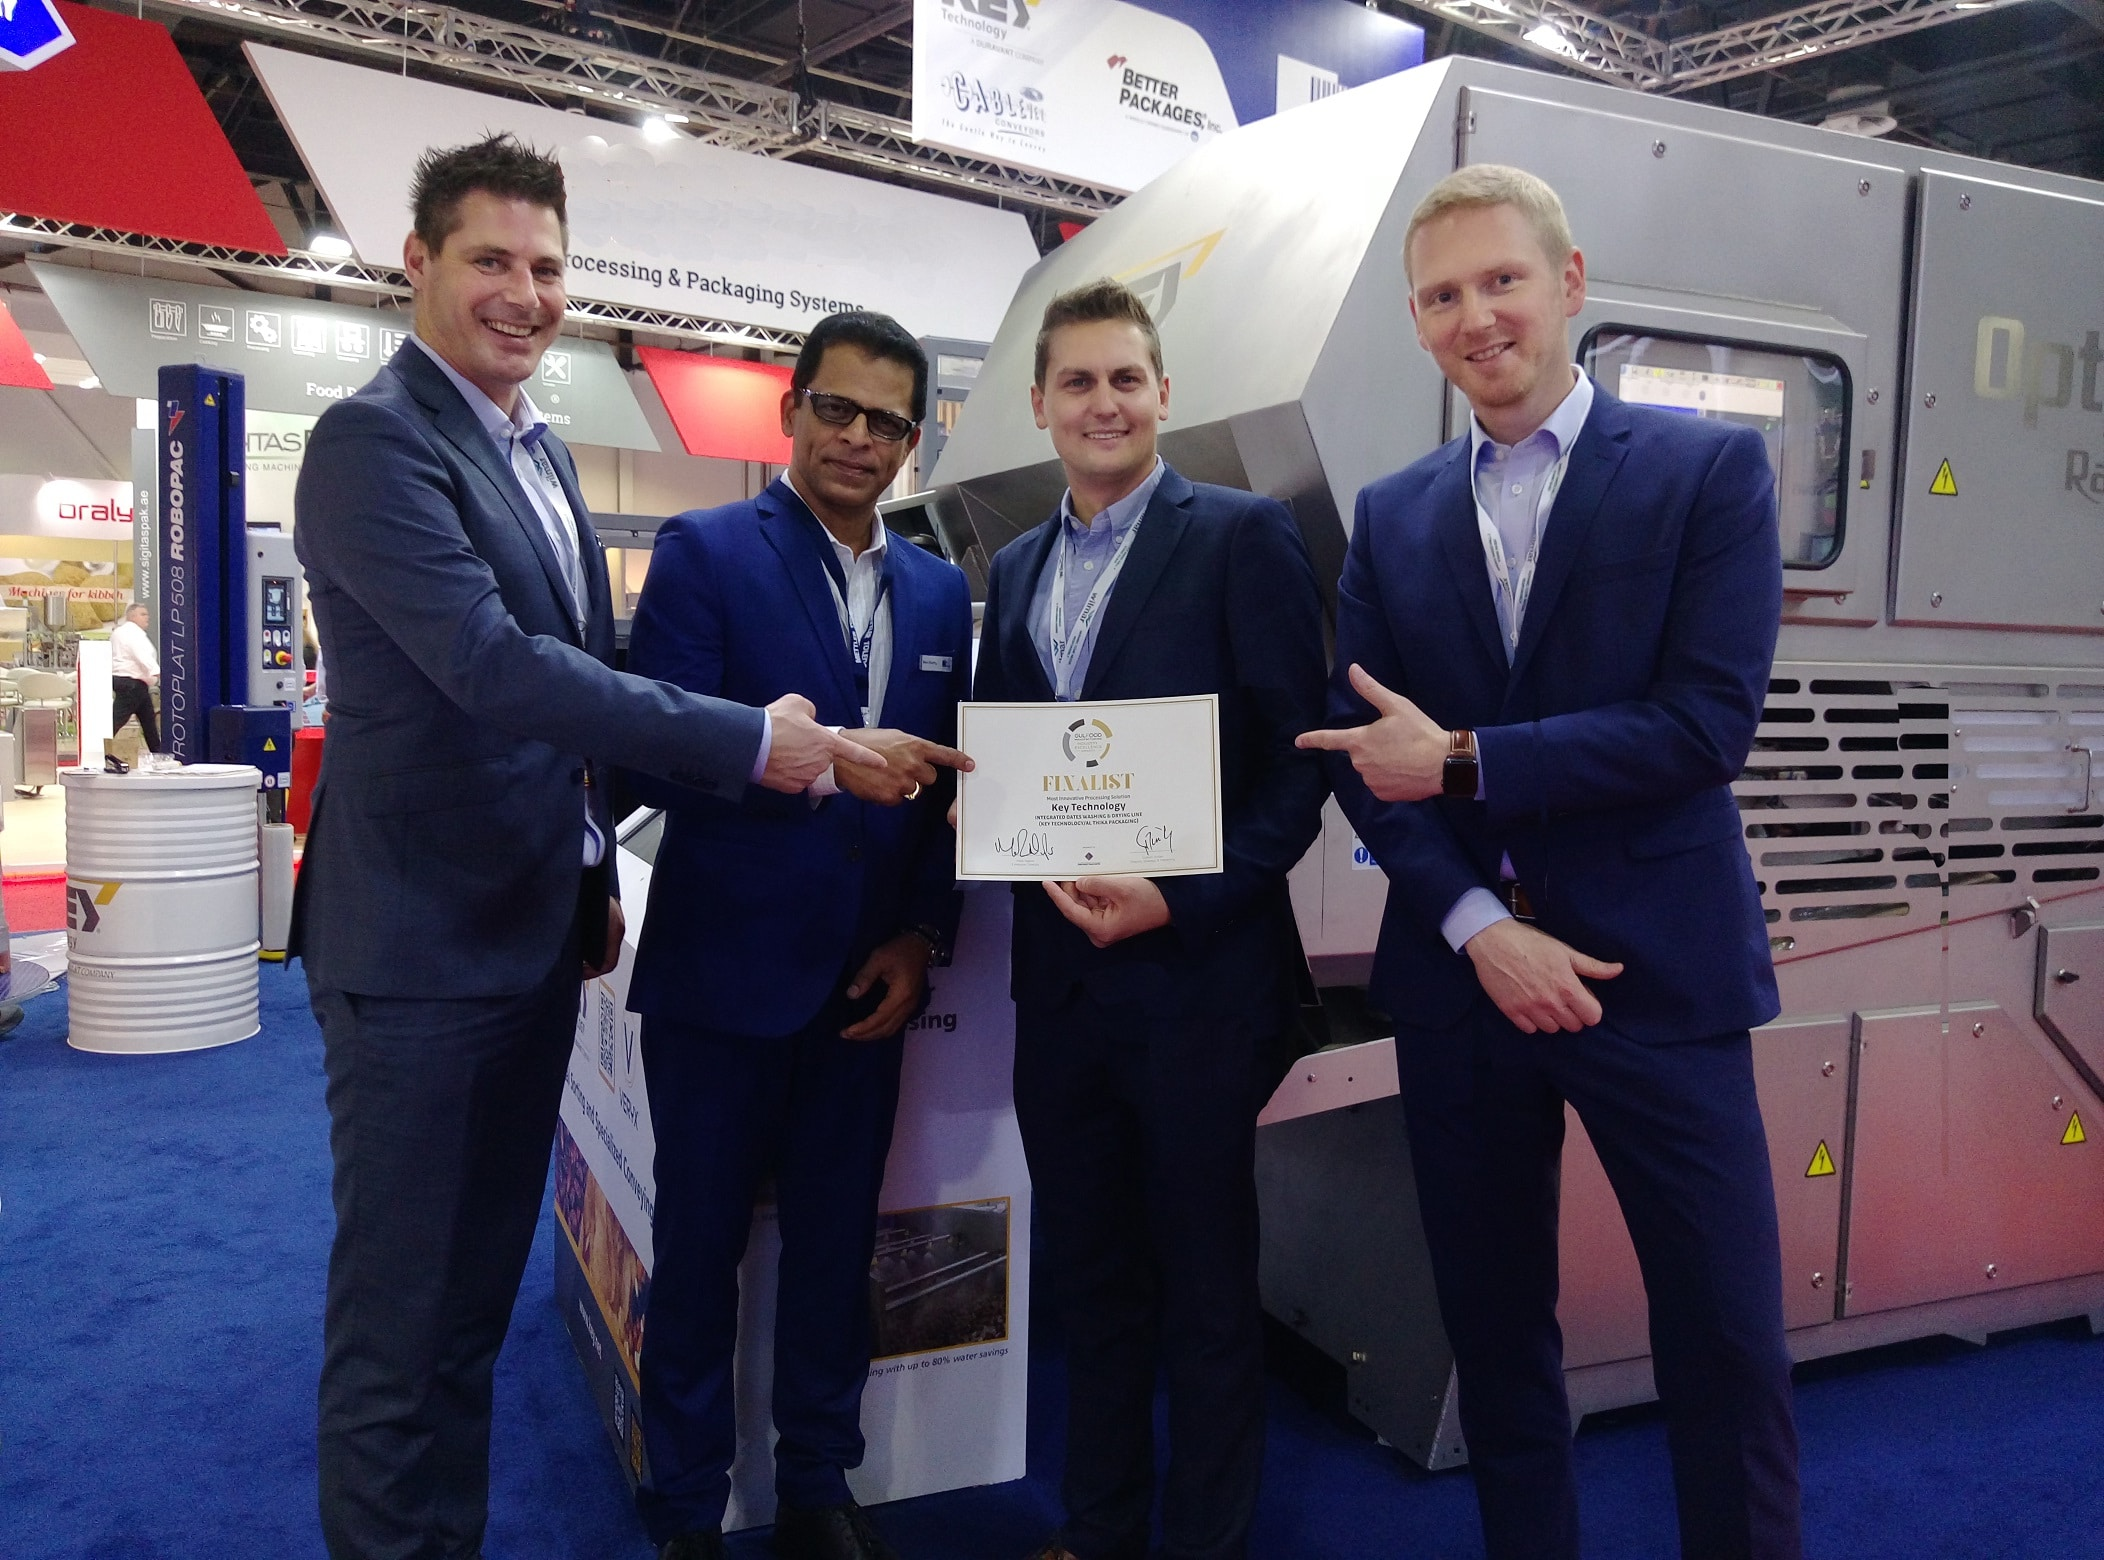 Gulfood Manufacturing, exhibition, UAE, packaging, sorting, processing award machine